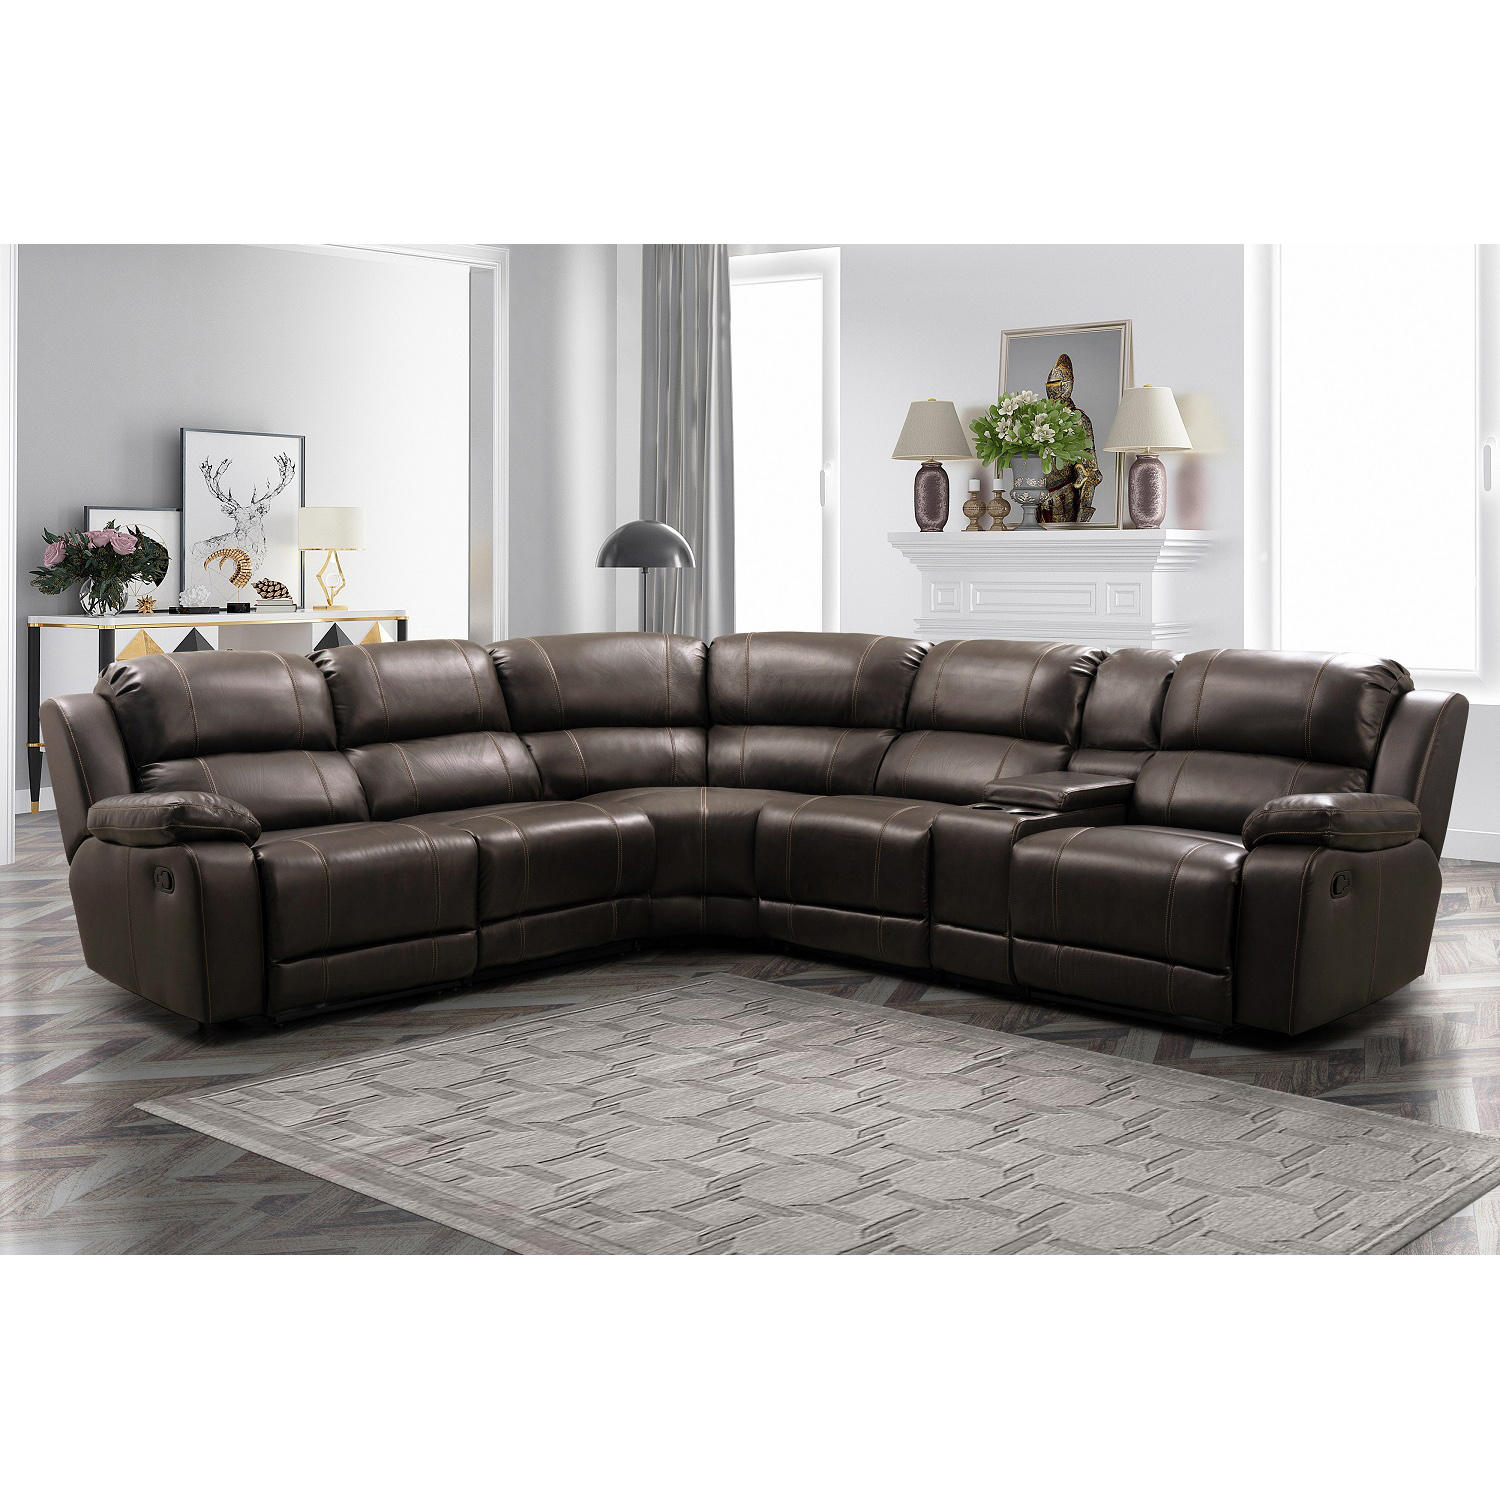 Abbyson Living Genesis 6-Piece Reclining Sectional